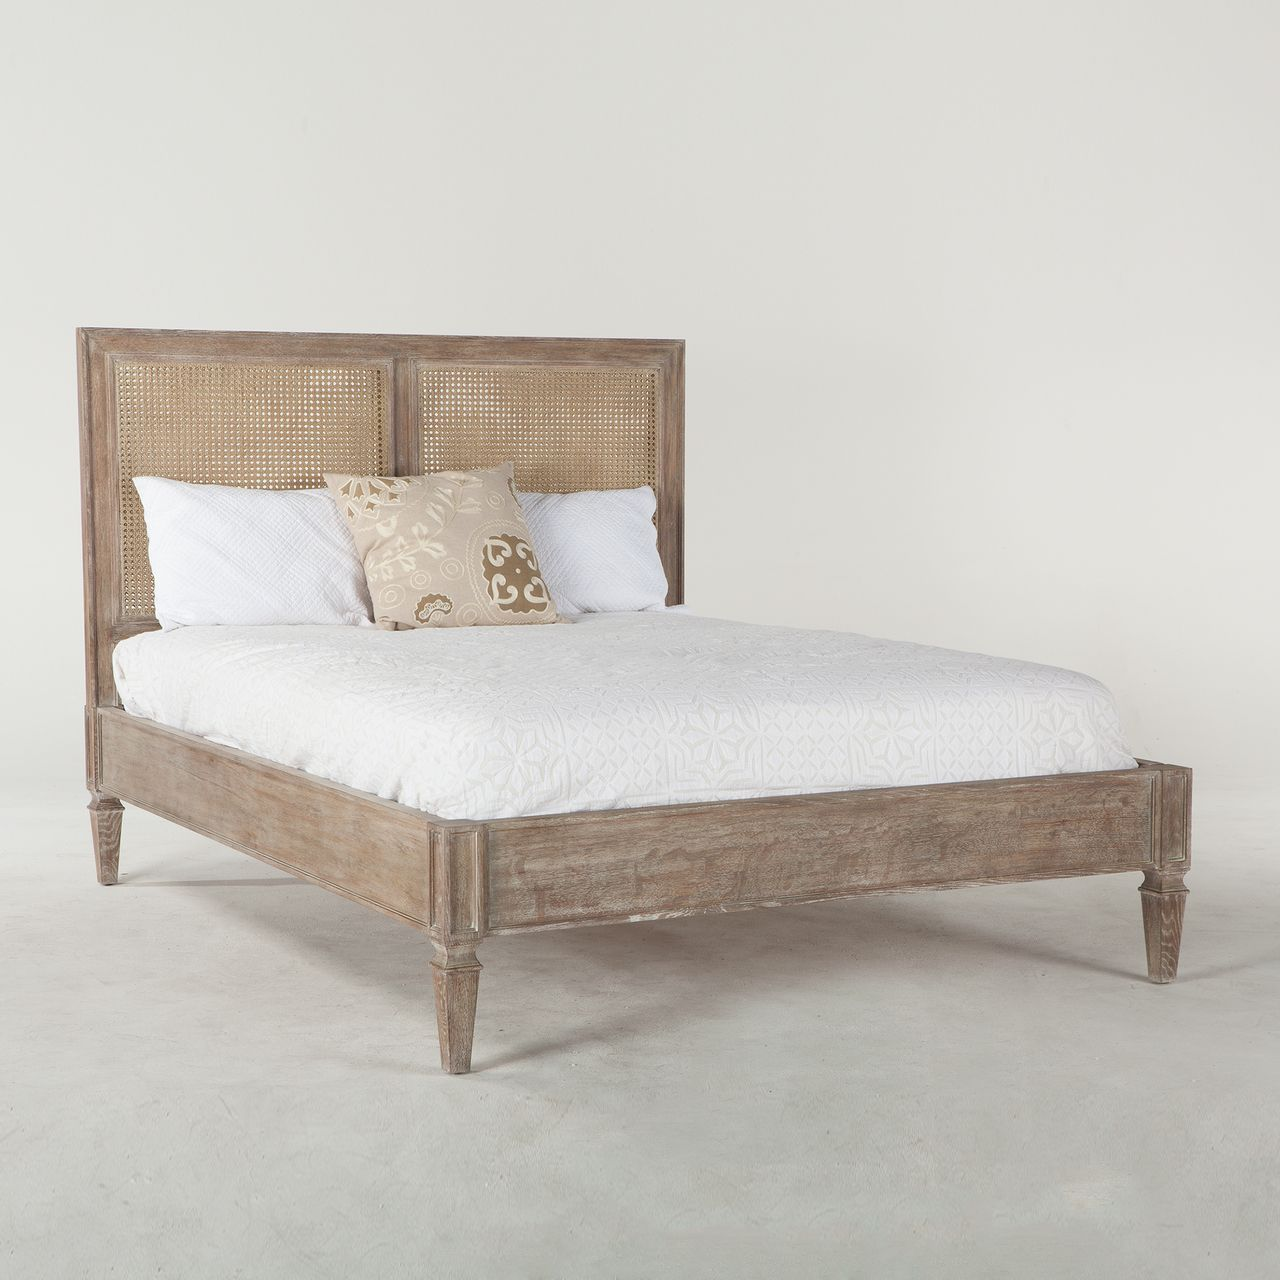 Shop Our Parisian Vintage Grey Oak Queen Size Platform Bed Frame